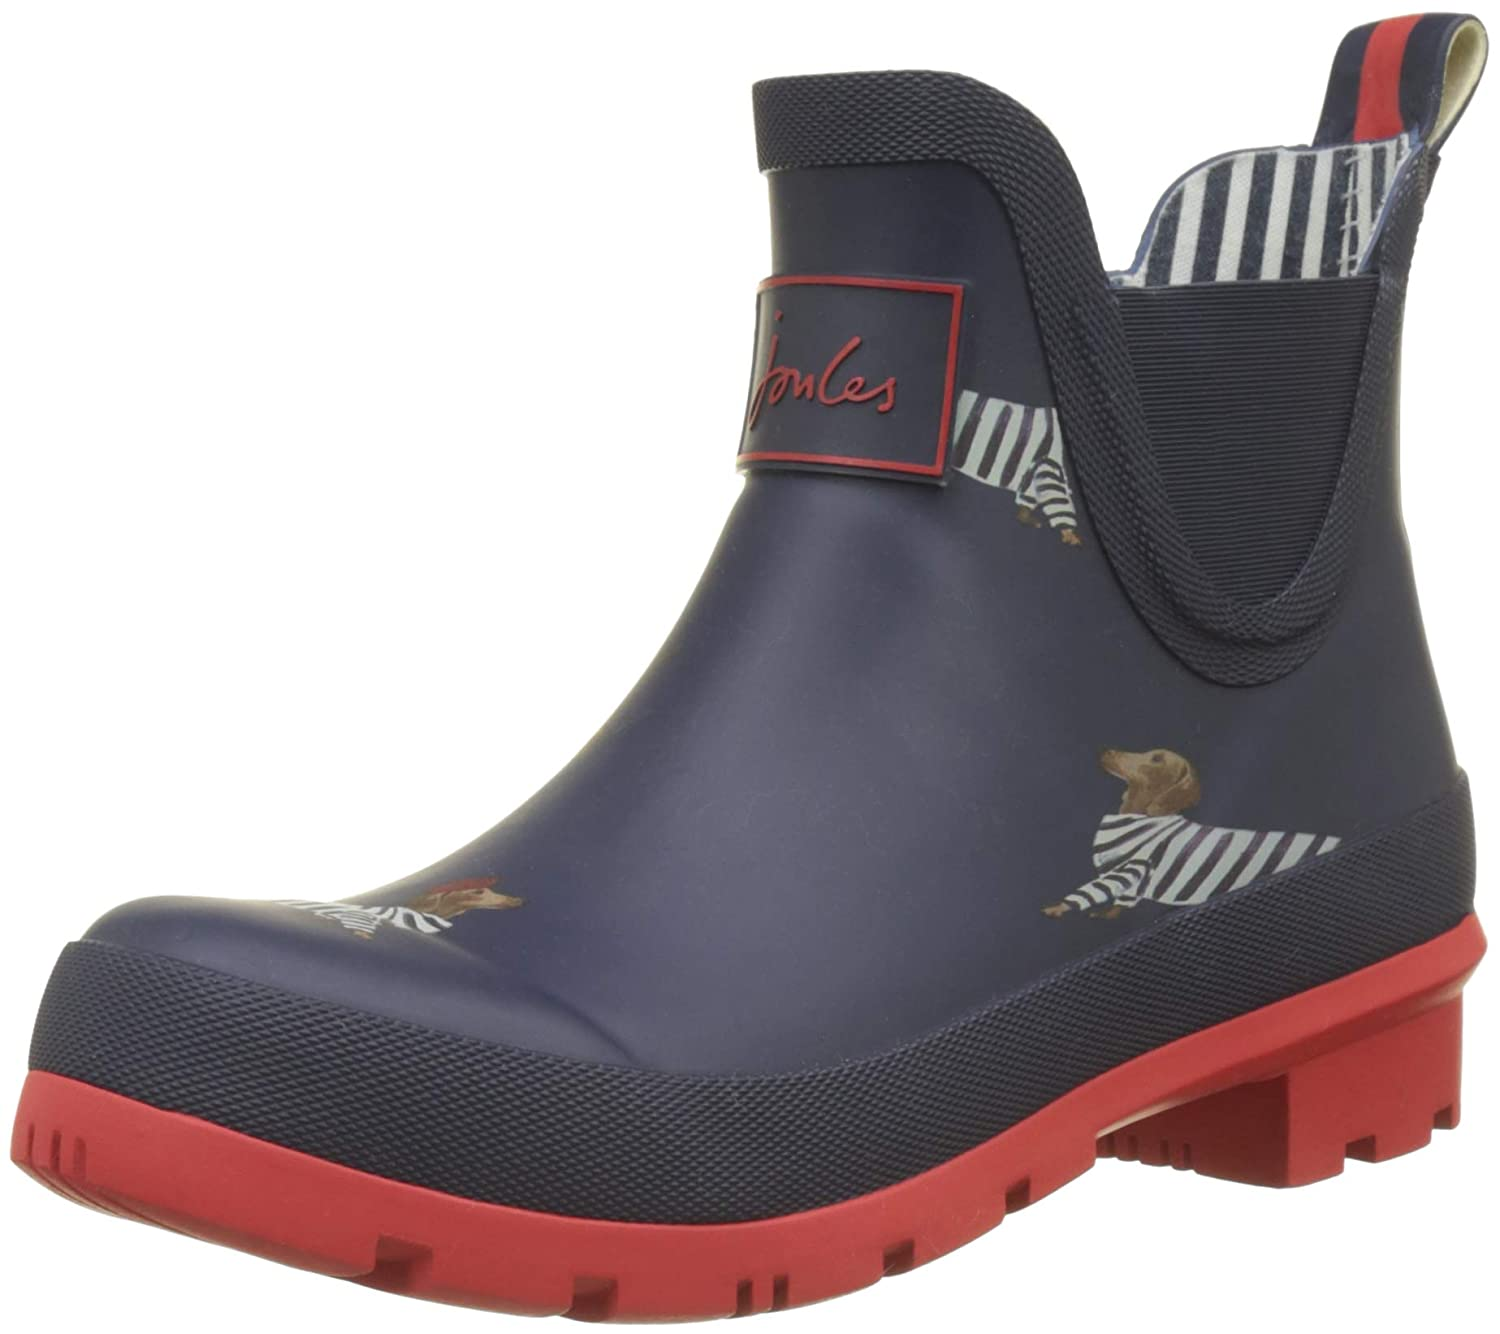 Joules Fnvdach) Wellibob, Bottes Bottes Classiques Cheville Navy Femme Bleu (French Navy Dachshund Fnvdach) 3869699 - shopssong.space